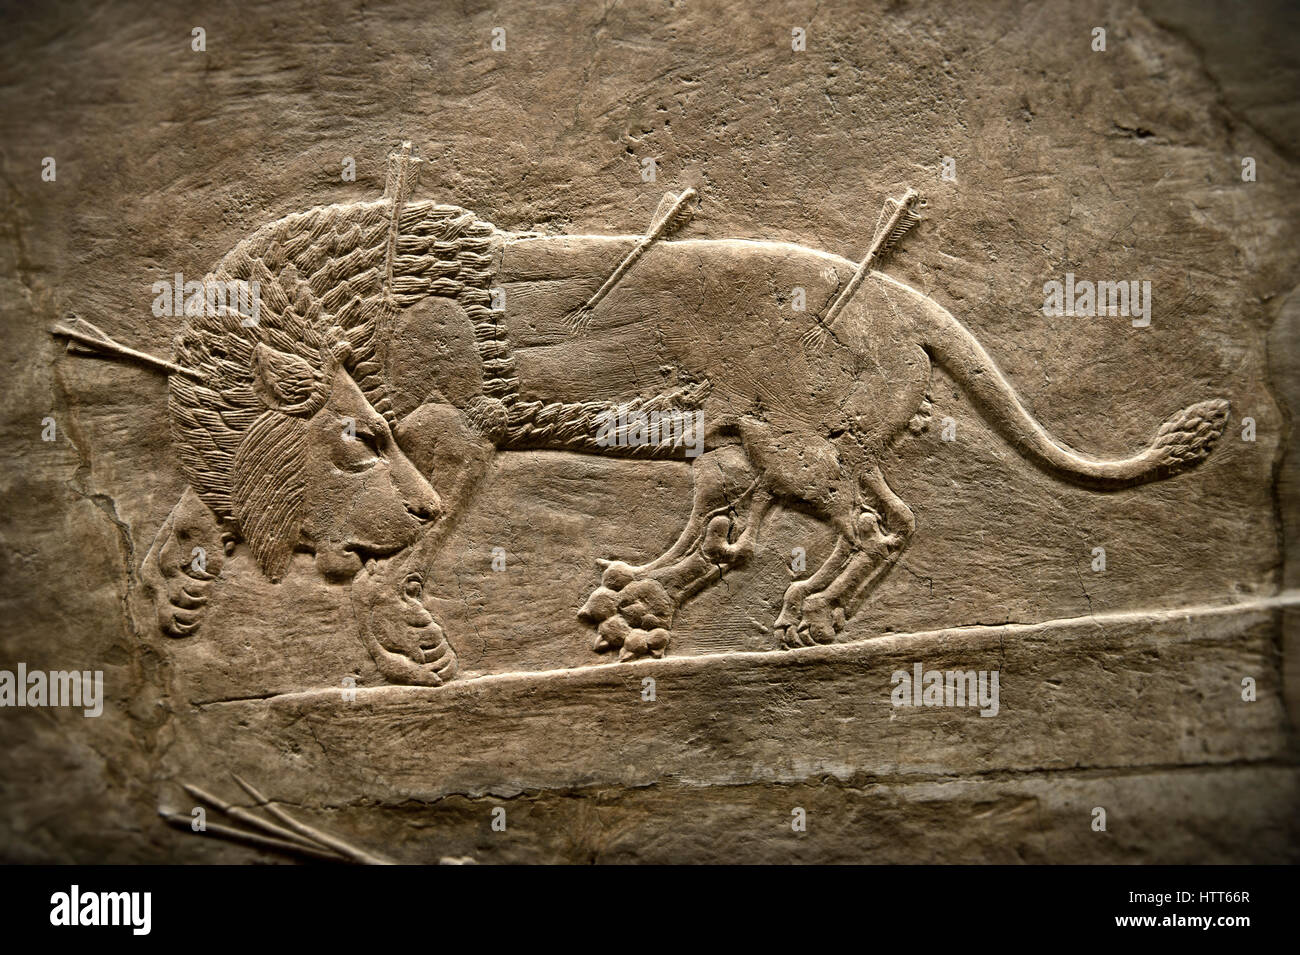 Assyrian relief sculpture panel from the lion hunt showing